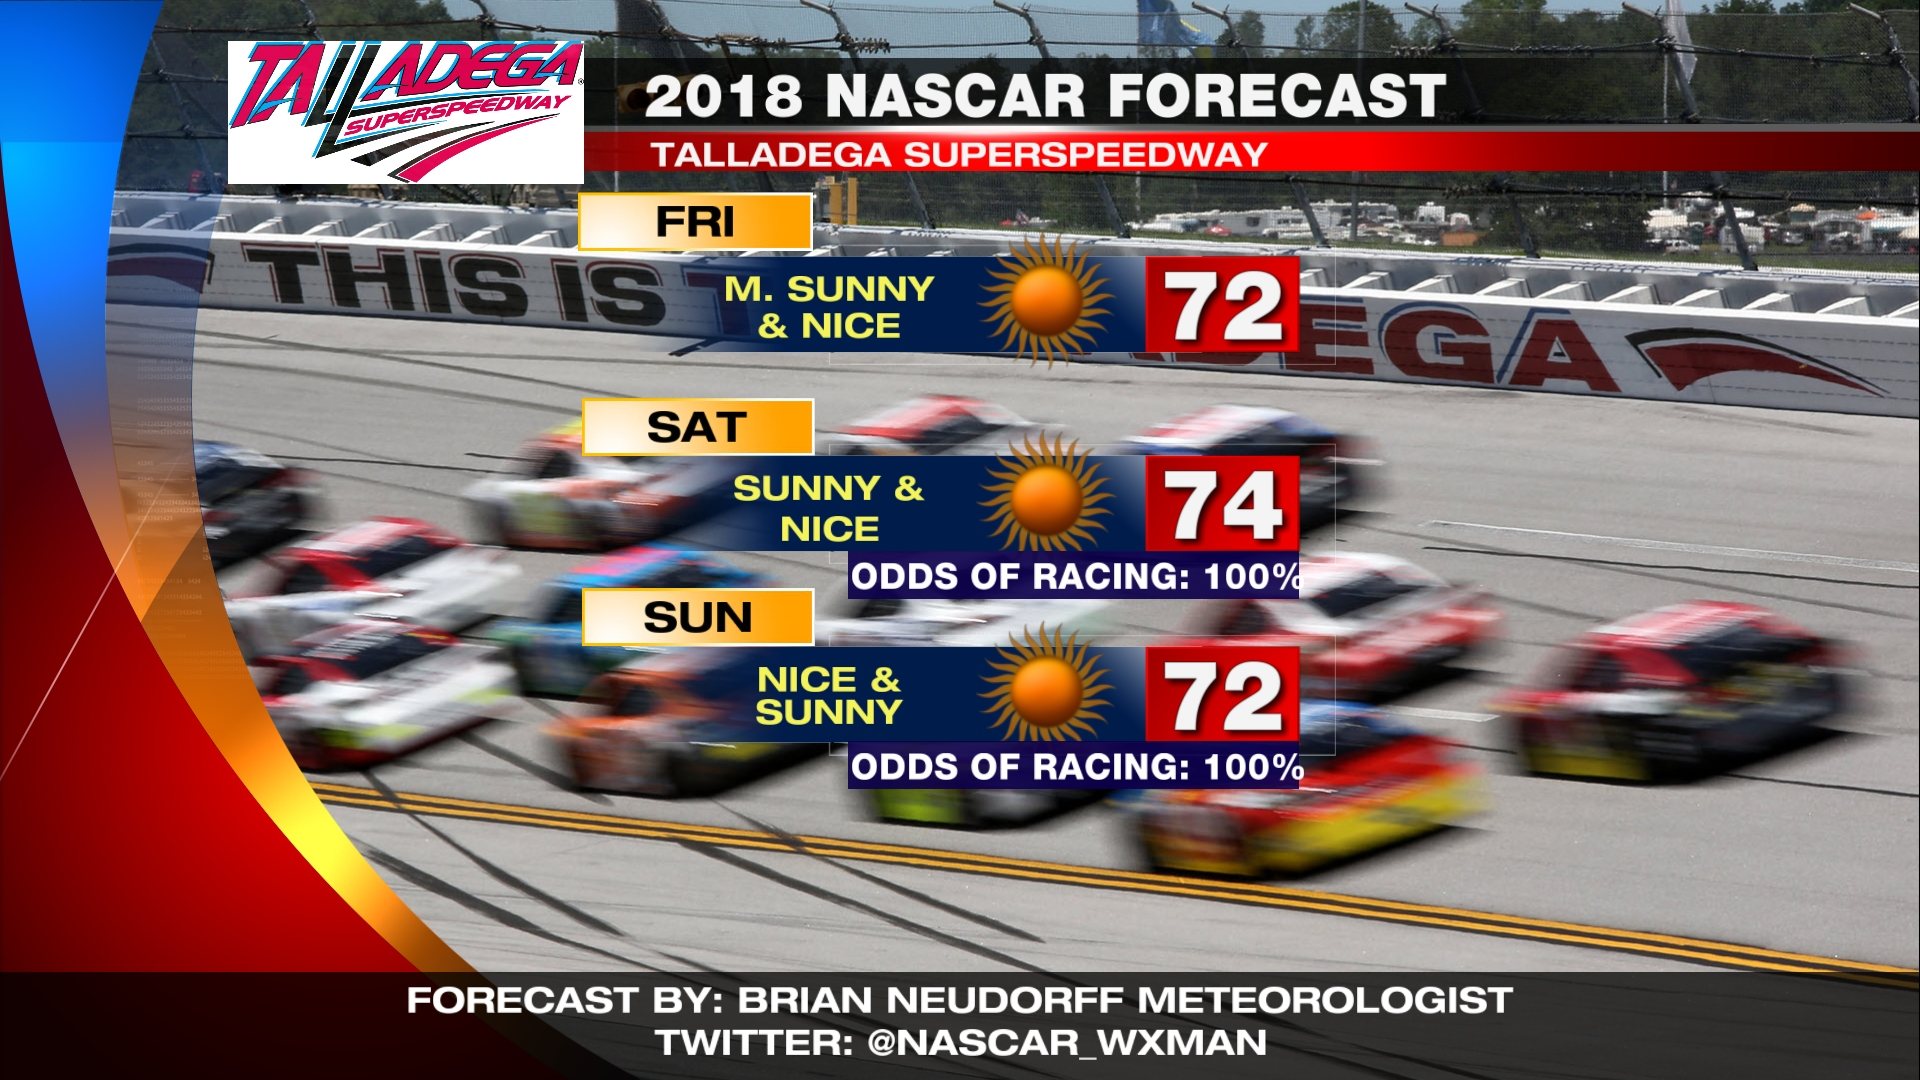 Second straight weekend for NASCAR with nice dry weather.